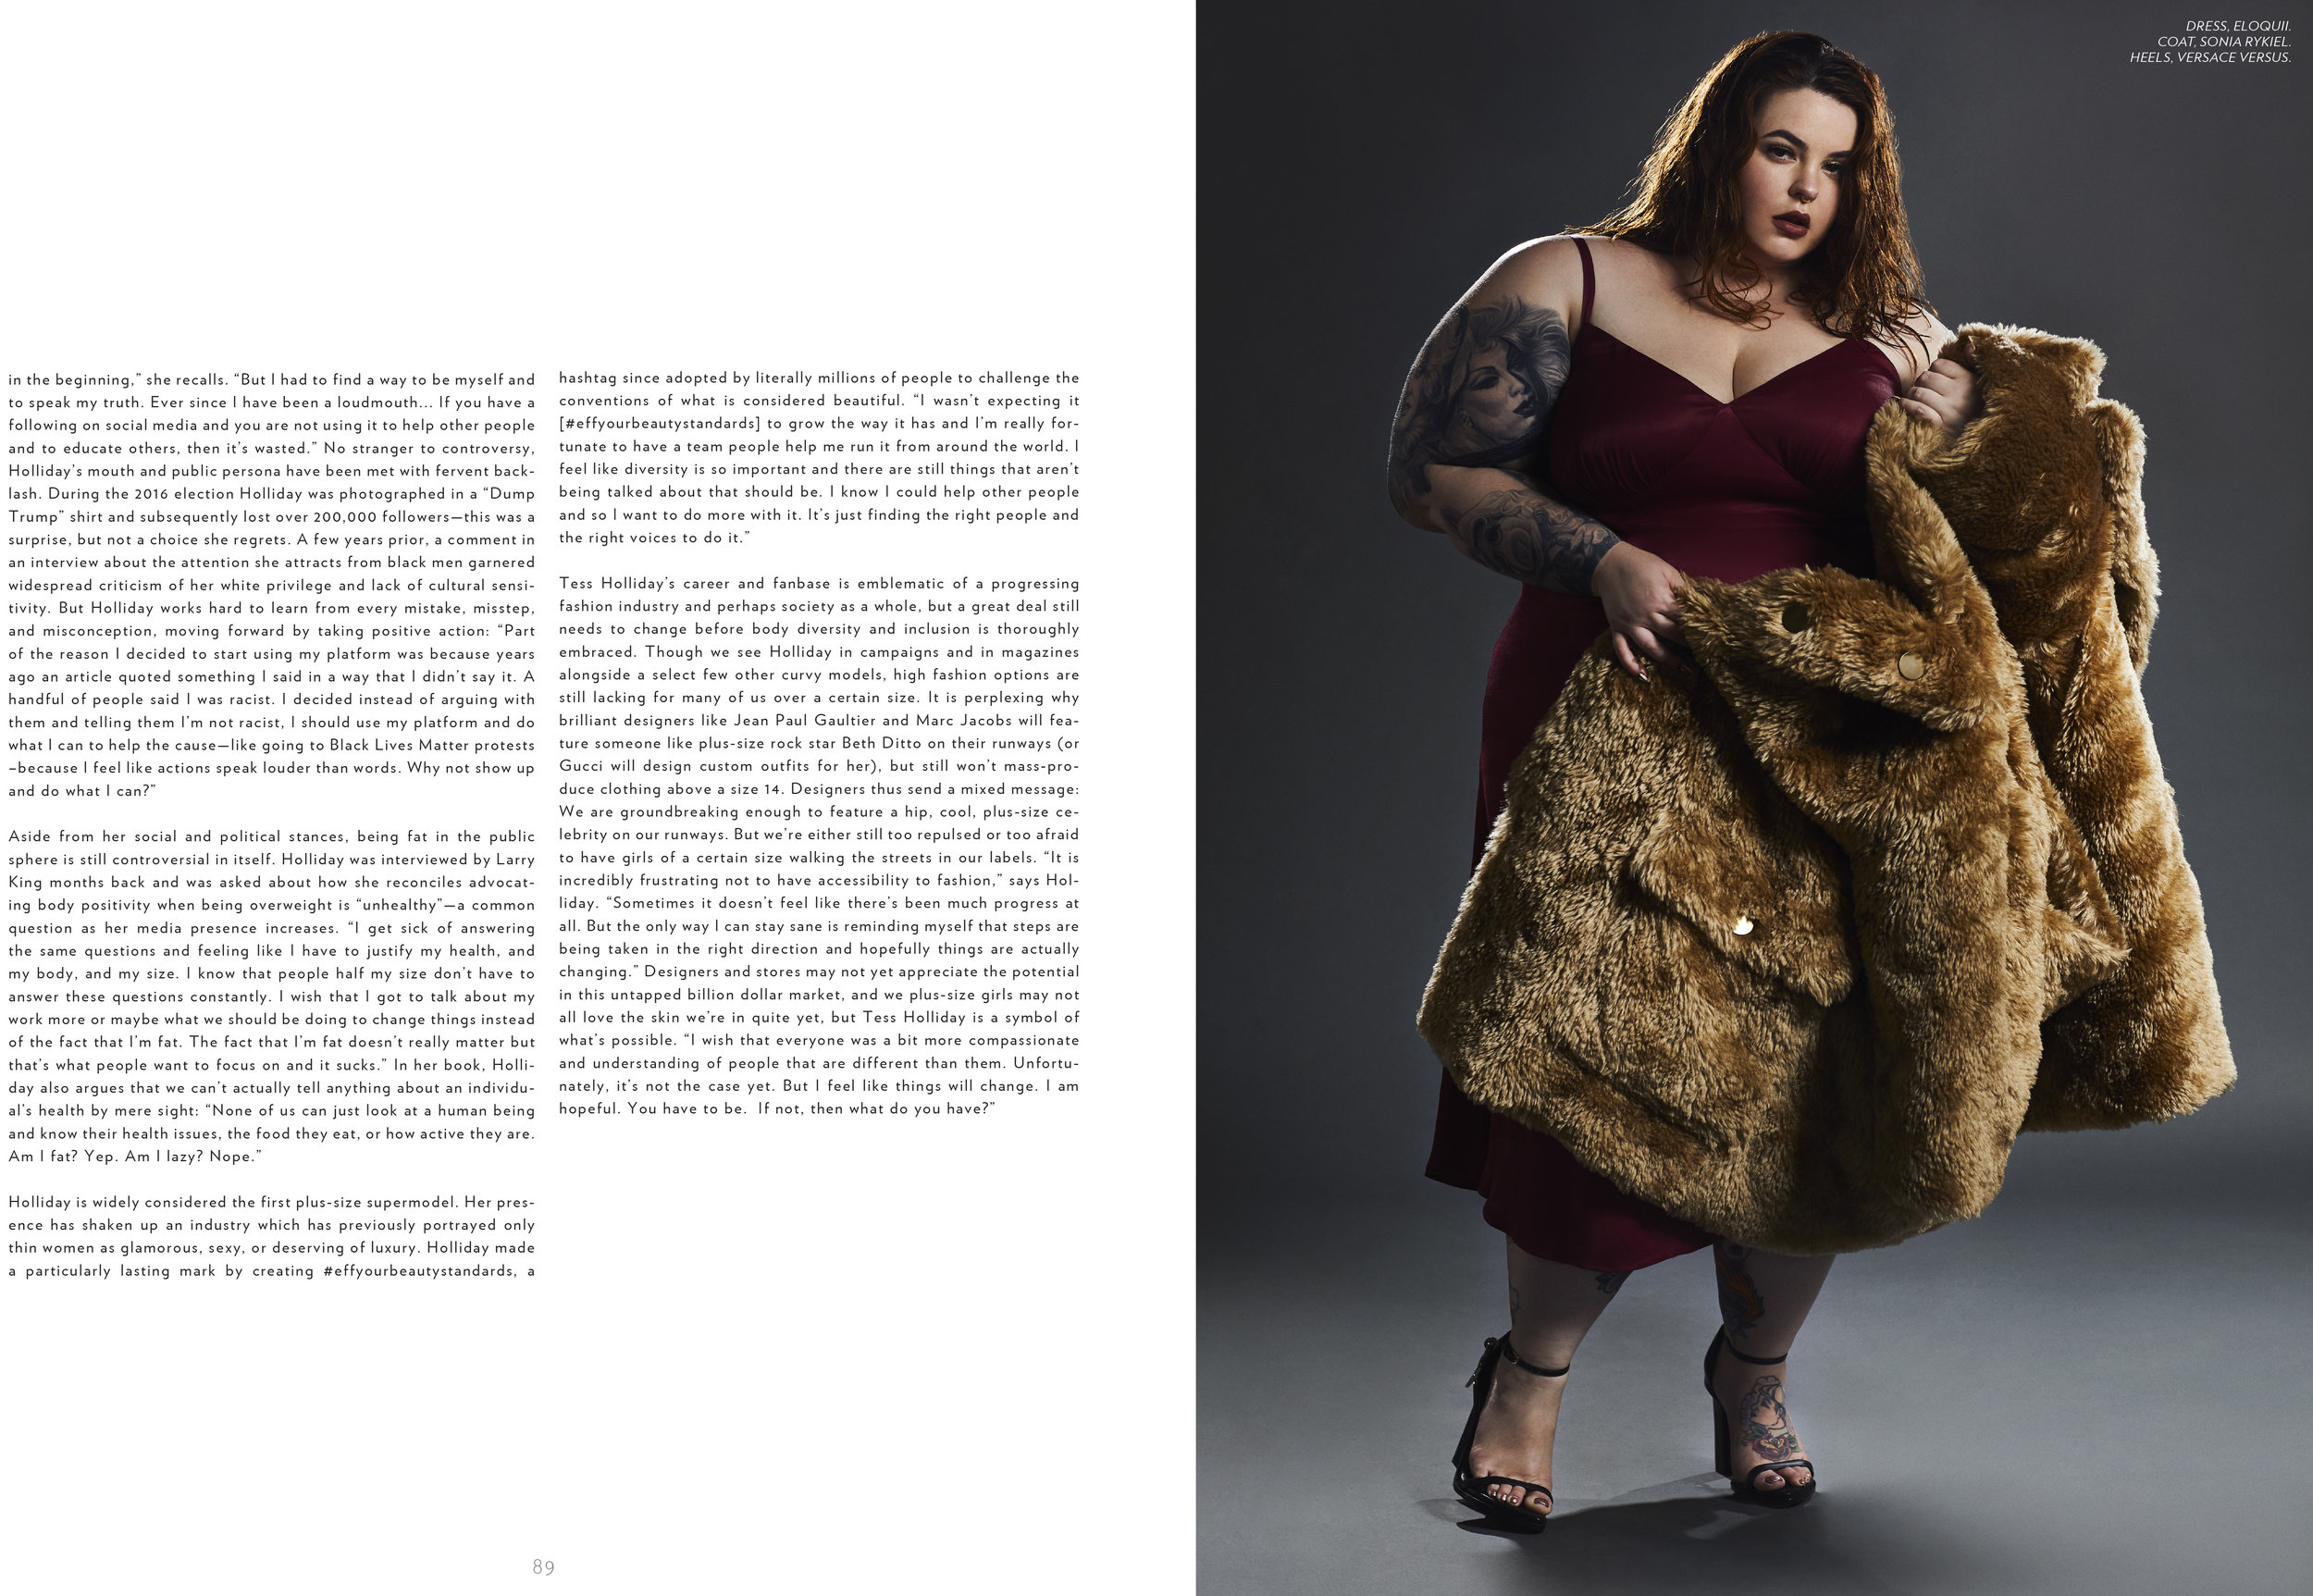 TESS HOLLIDAY x LADYGUNN MAGAZINE